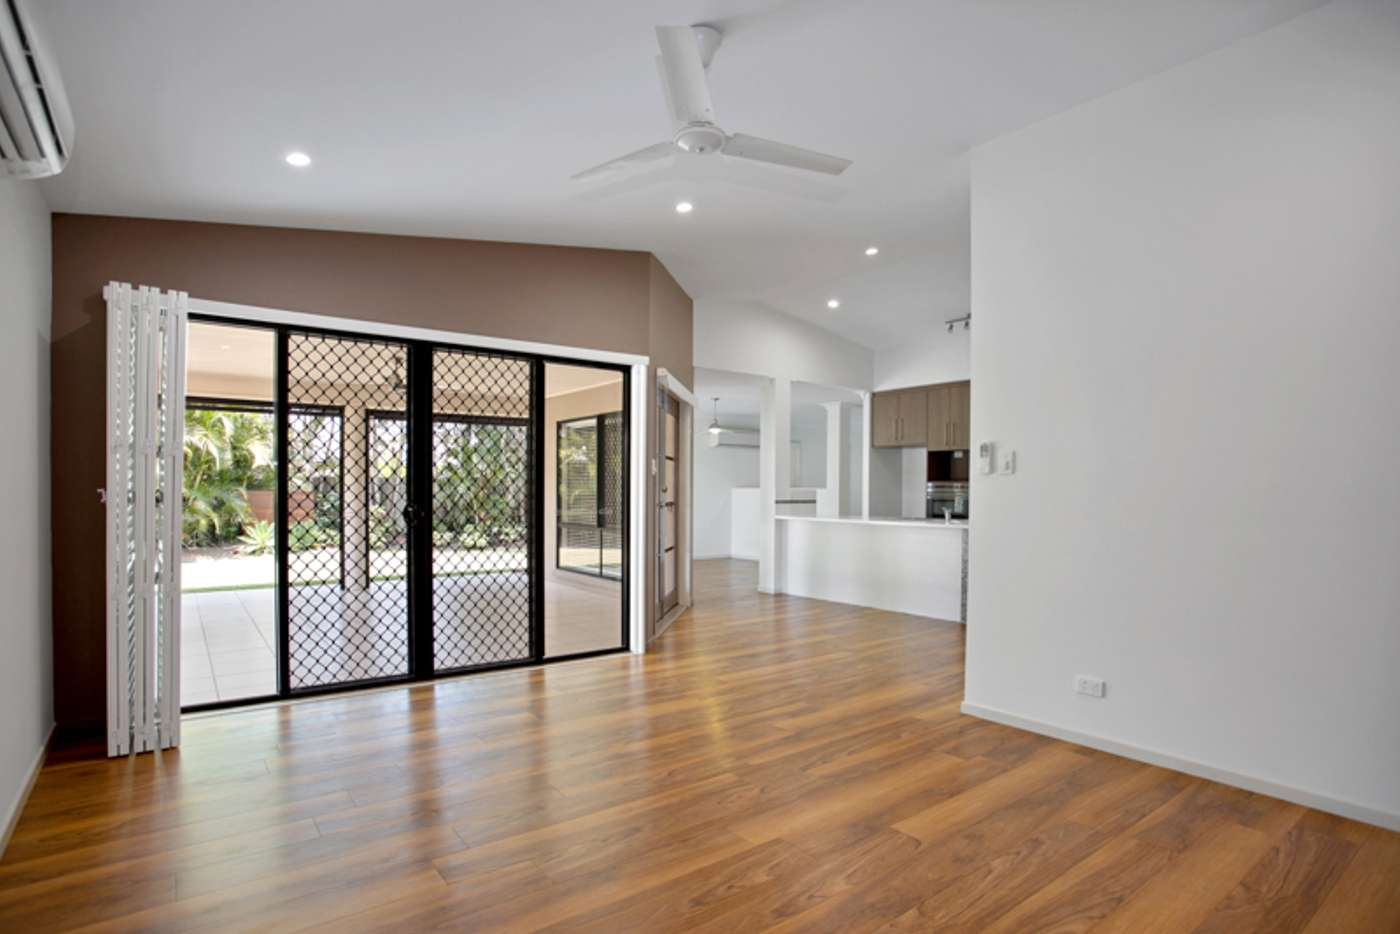 Seventh view of Homely house listing, 7 Mark Crescent, Glenella QLD 4740